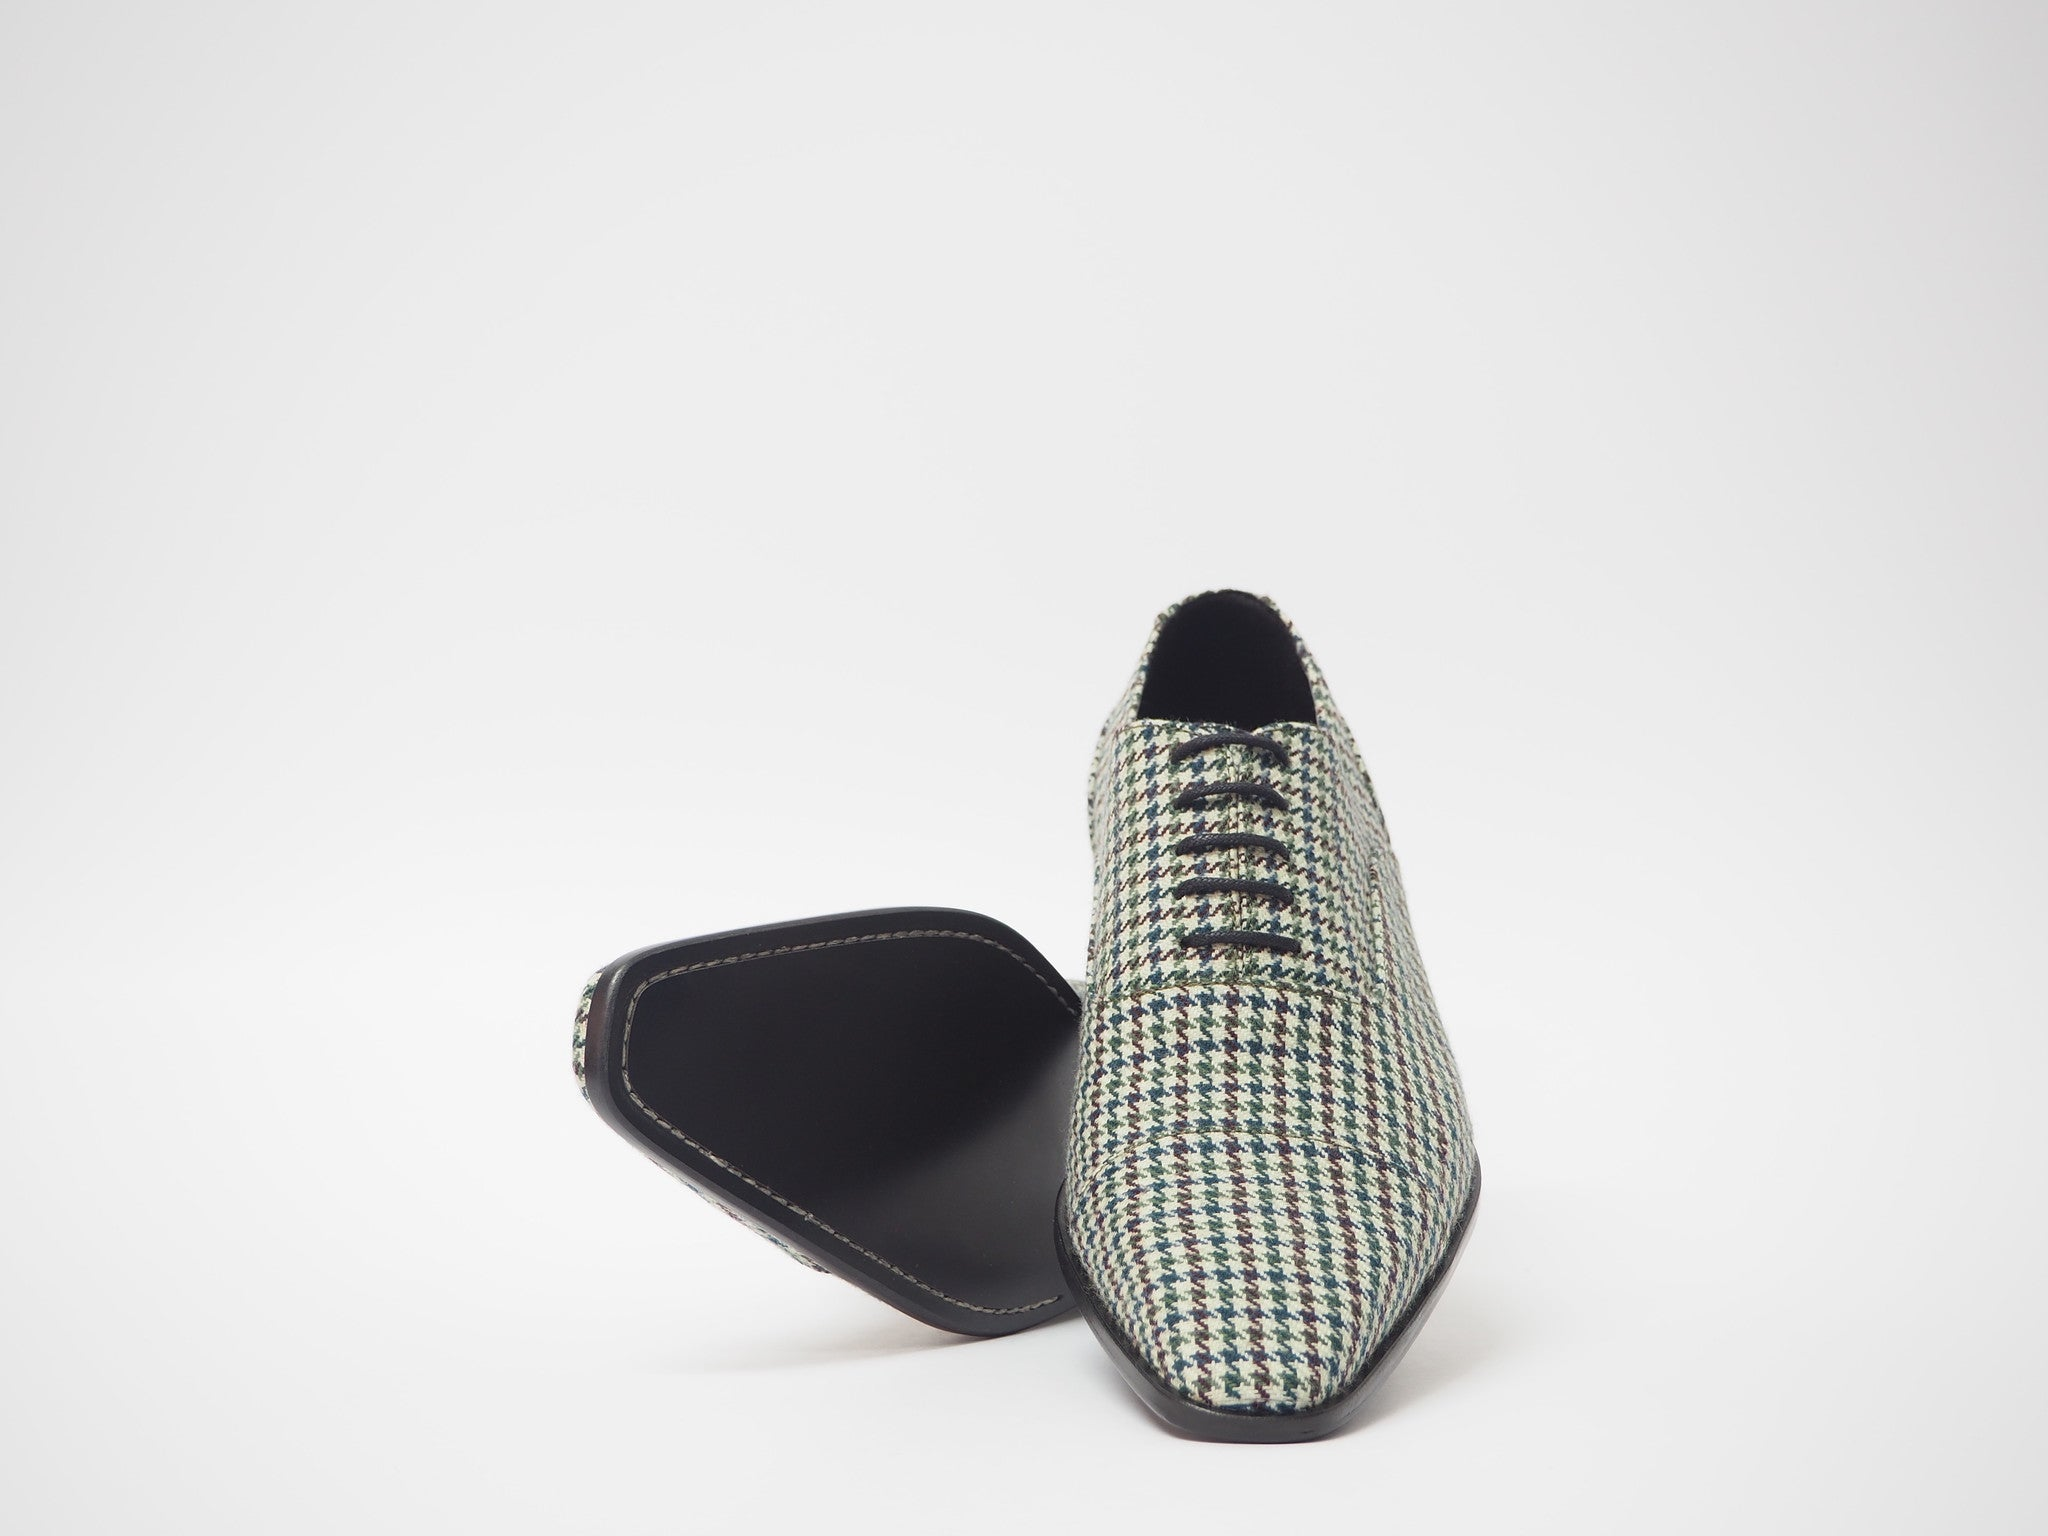 Size 43 - Multicolor Pied de Poule Oxford + Belt